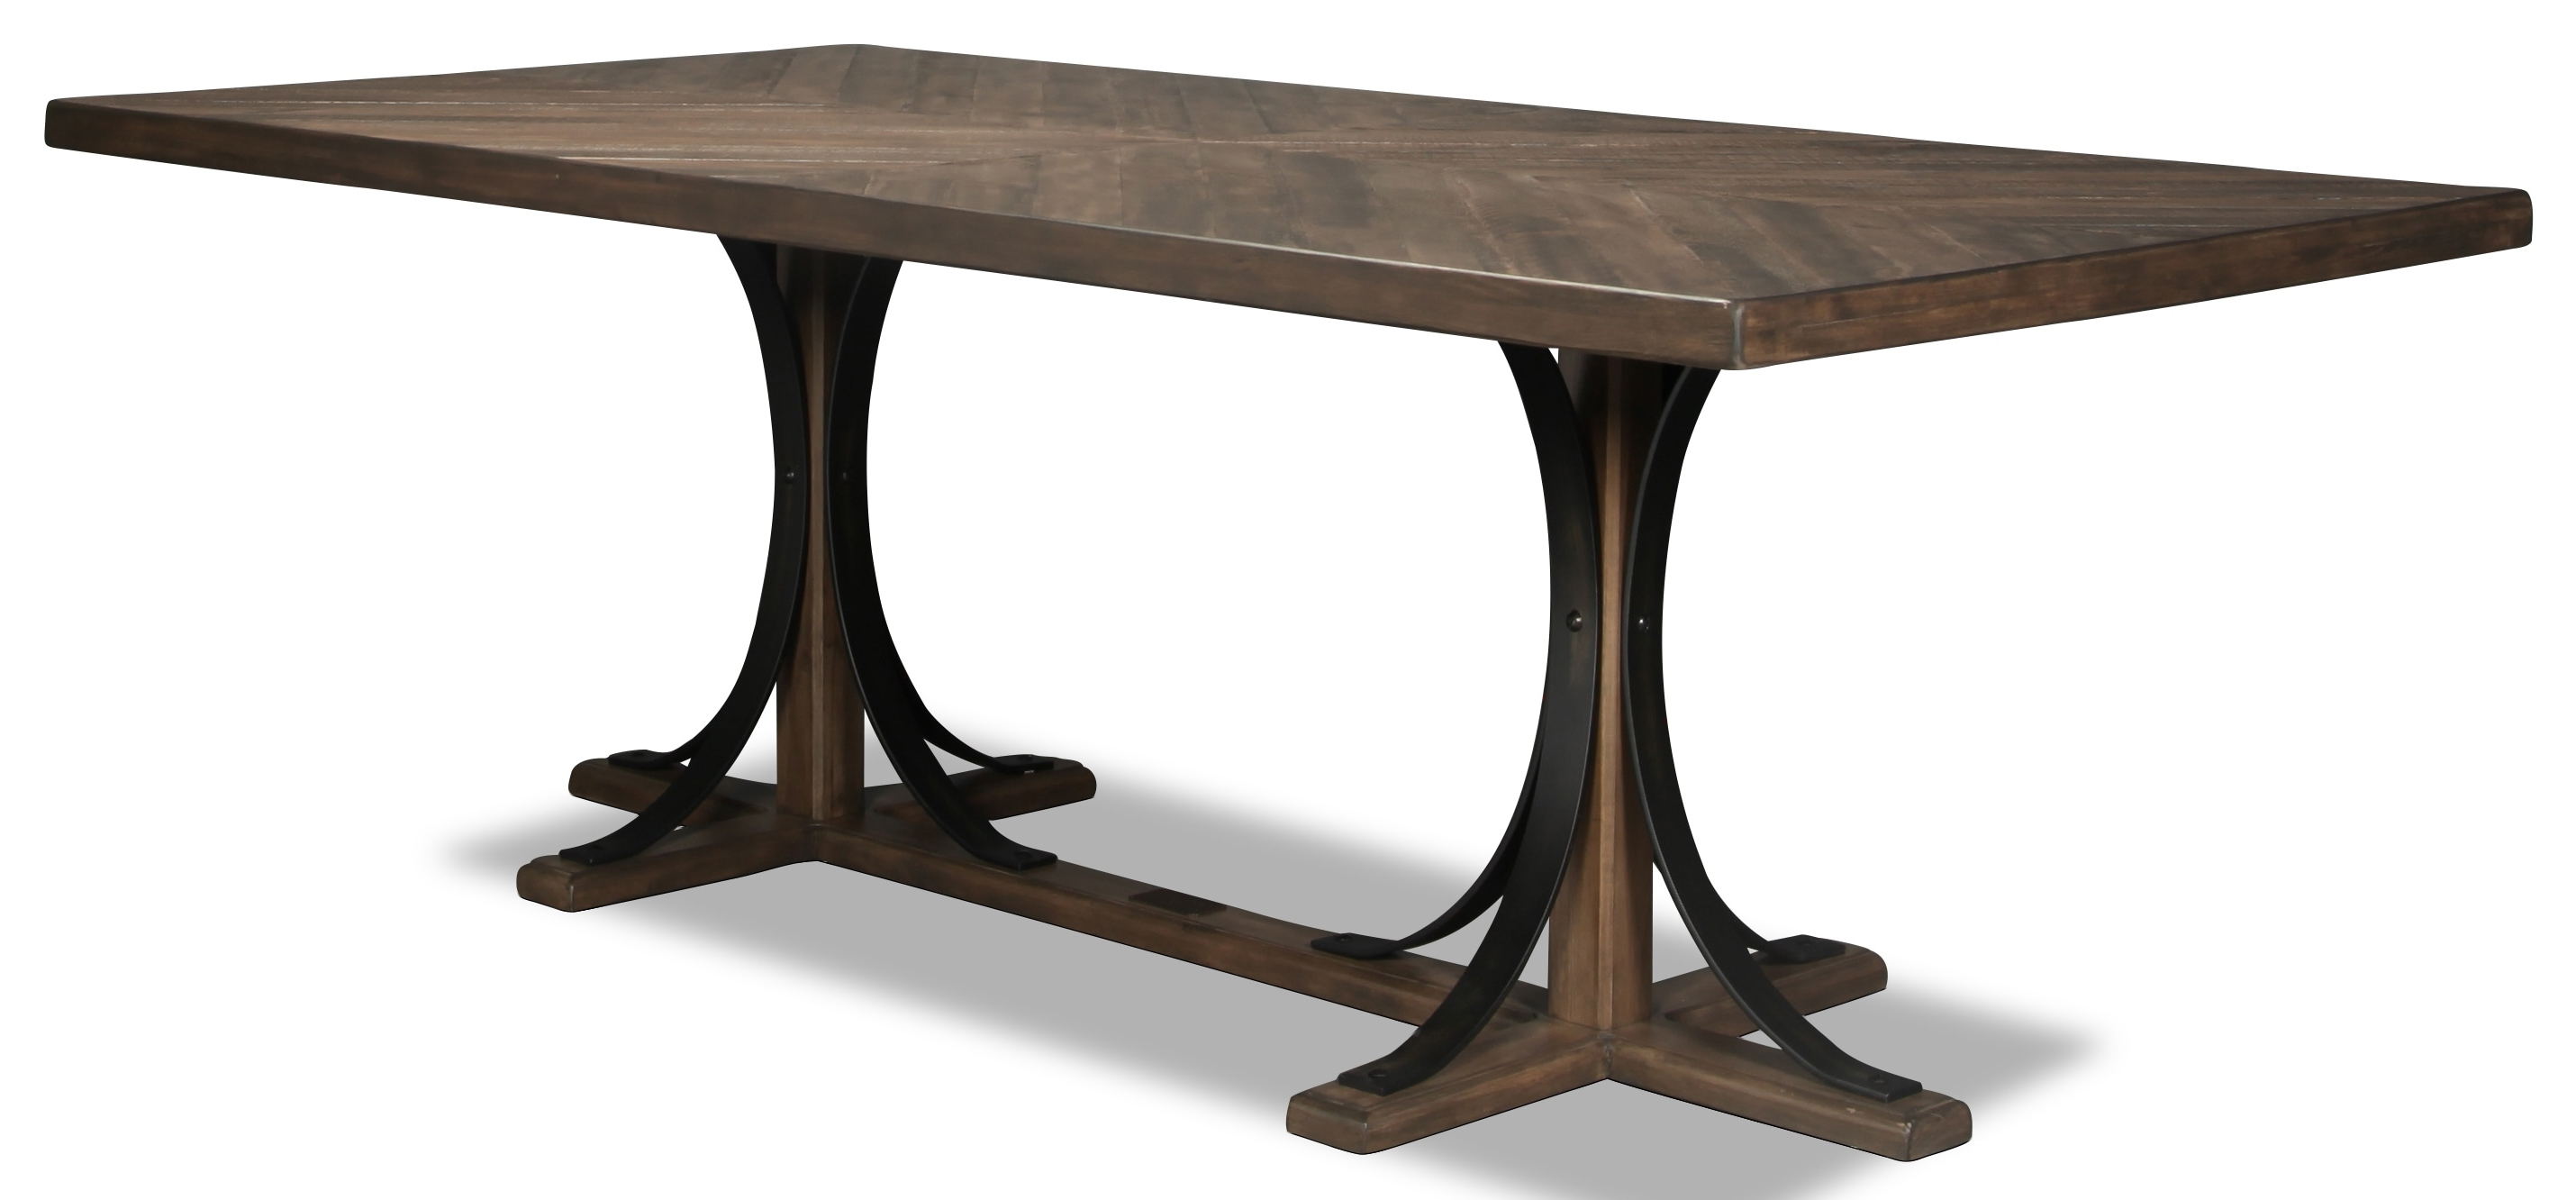 Famous Magnolia Home Iron Trestle Cocktail Tables With Magnolia Home Traditional Iron Trestle Table (View 9 of 20)